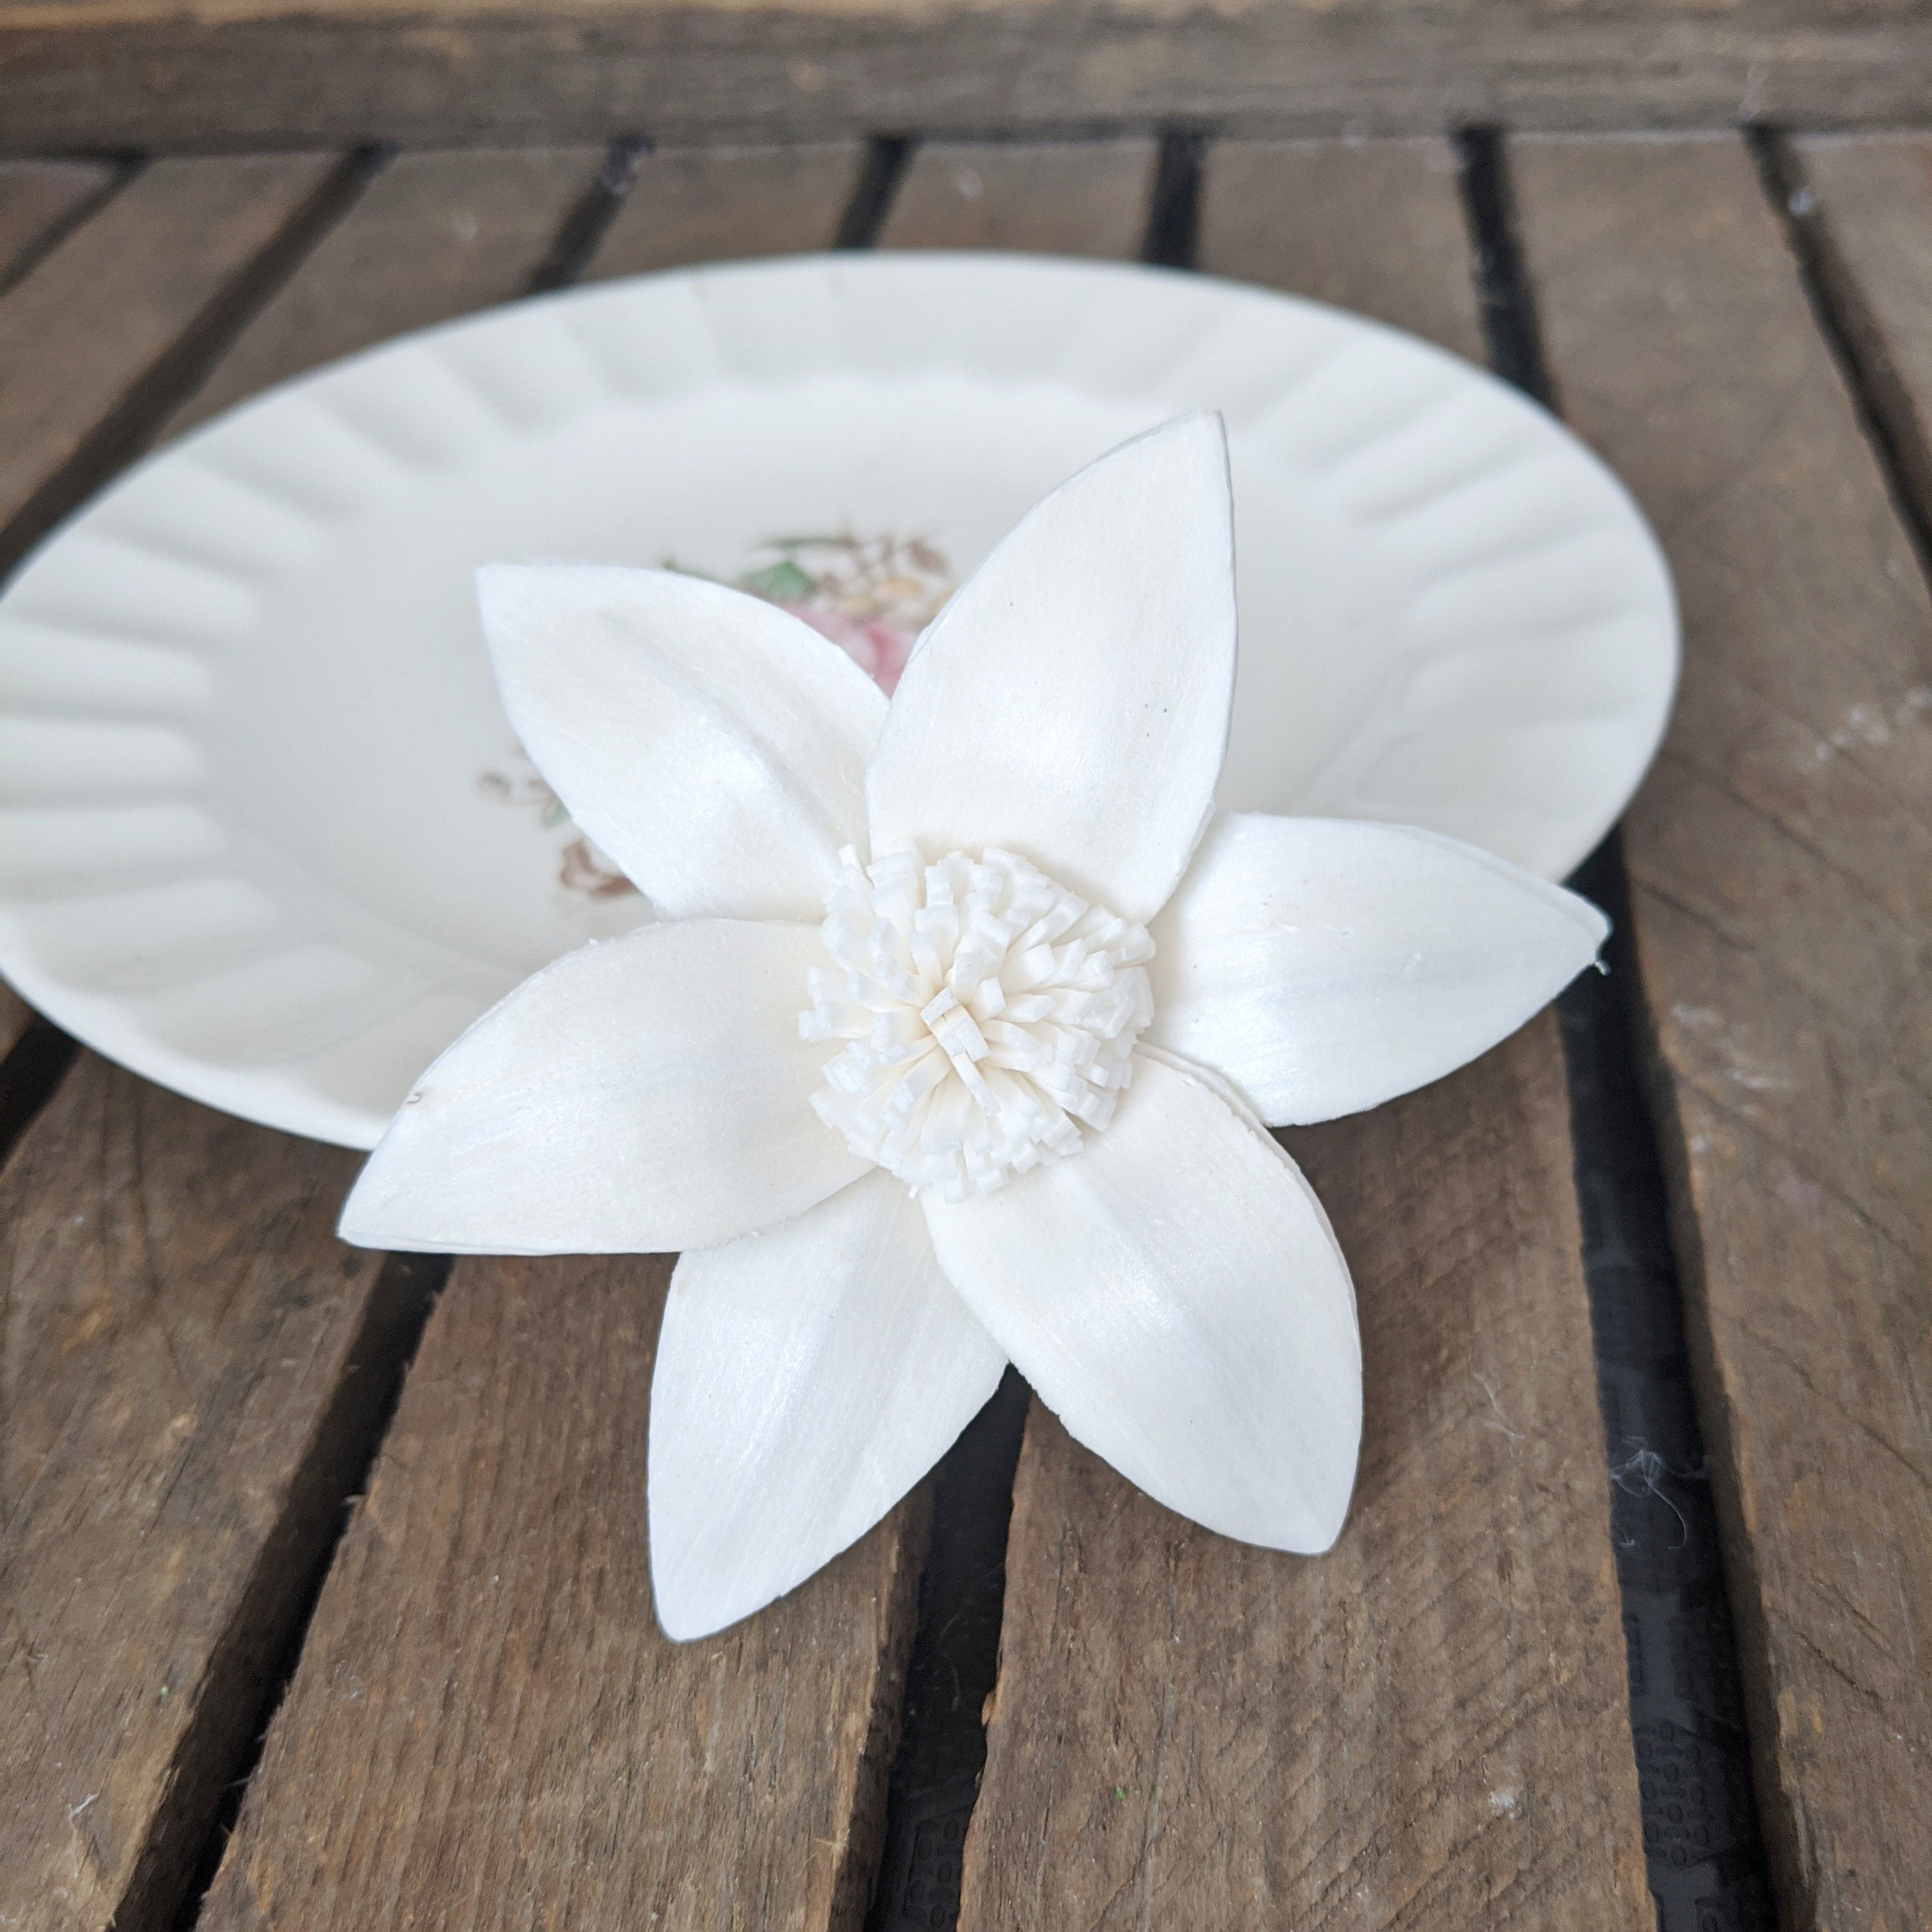 Star Lily - set of 12 - 2.5 inches - sola wood flowers wholesale